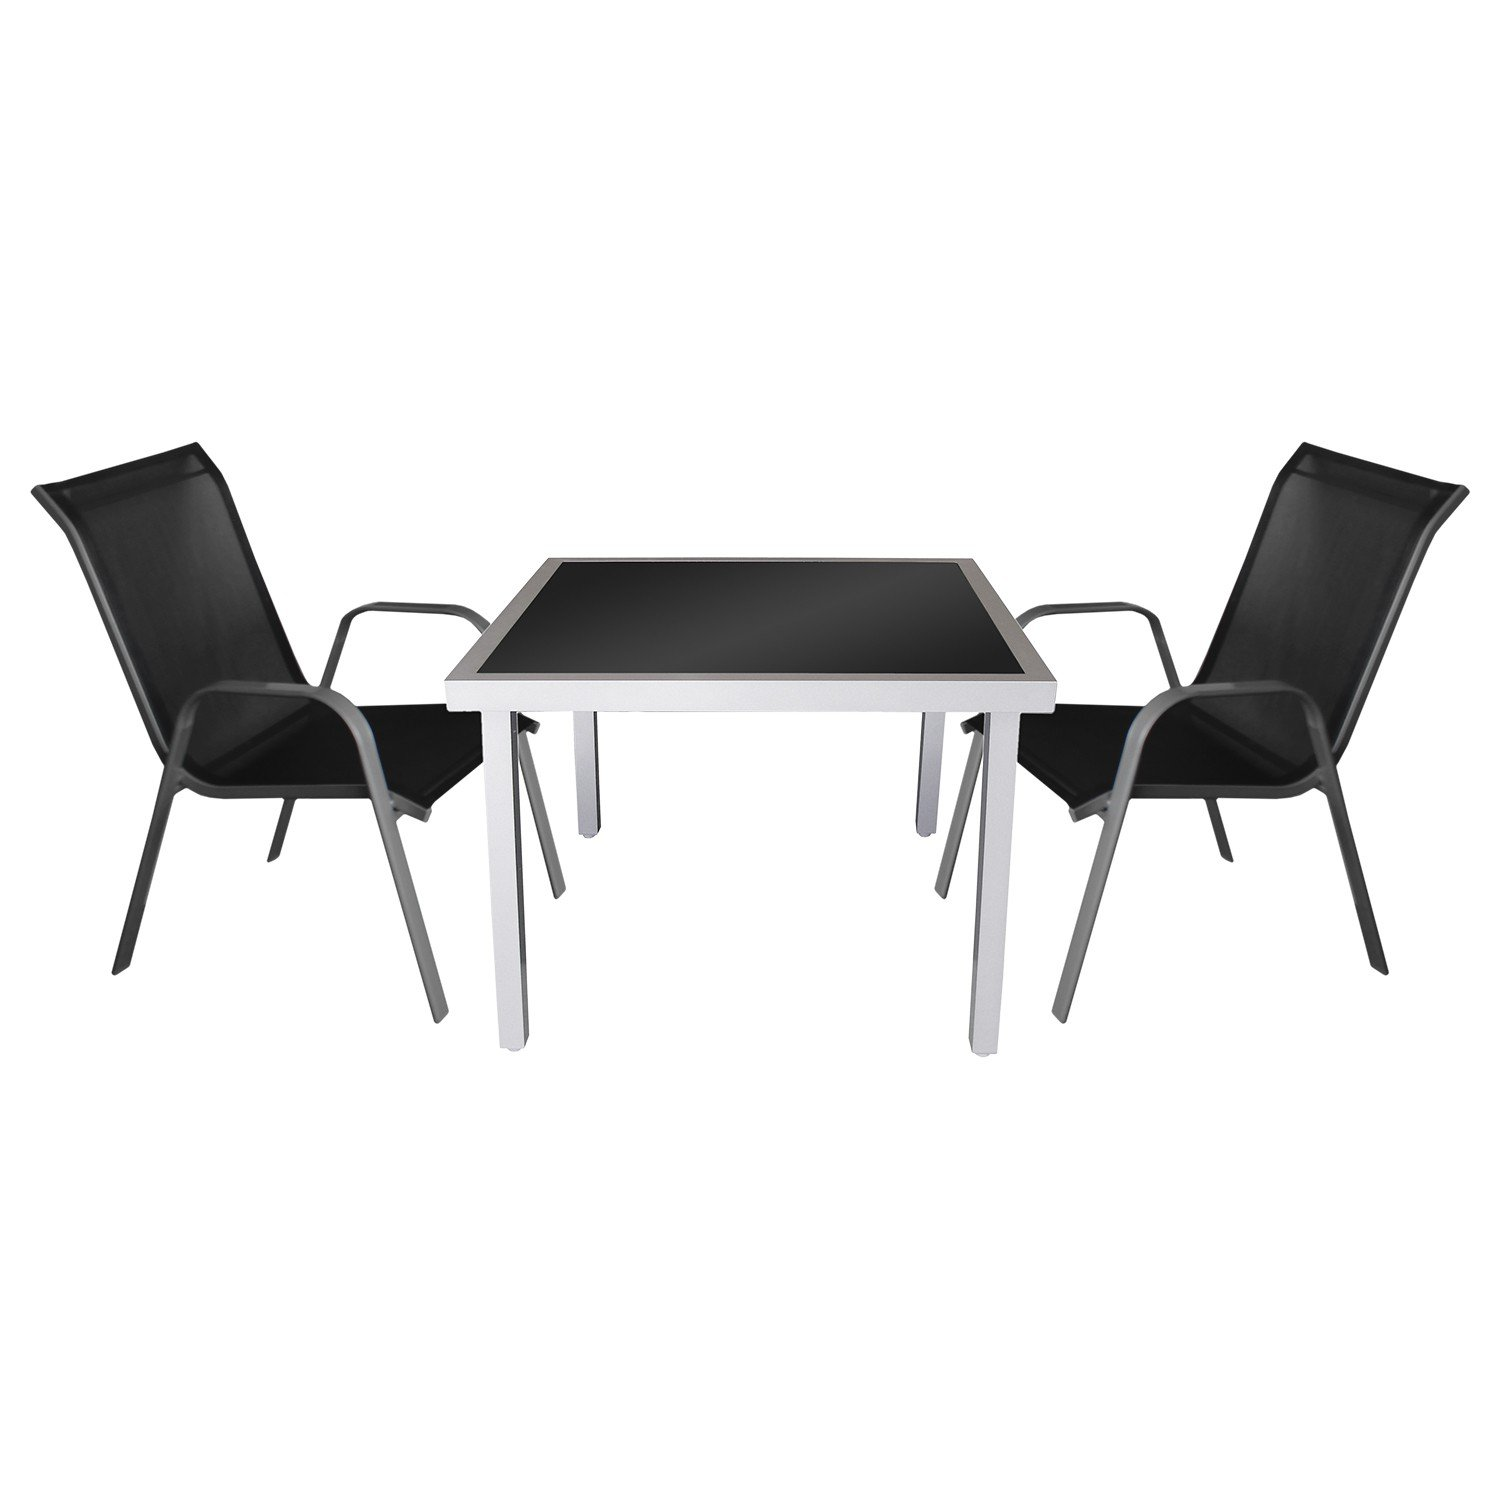 3tlg gartengarnitur balkonm bel bistro set sitzgruppe. Black Bedroom Furniture Sets. Home Design Ideas